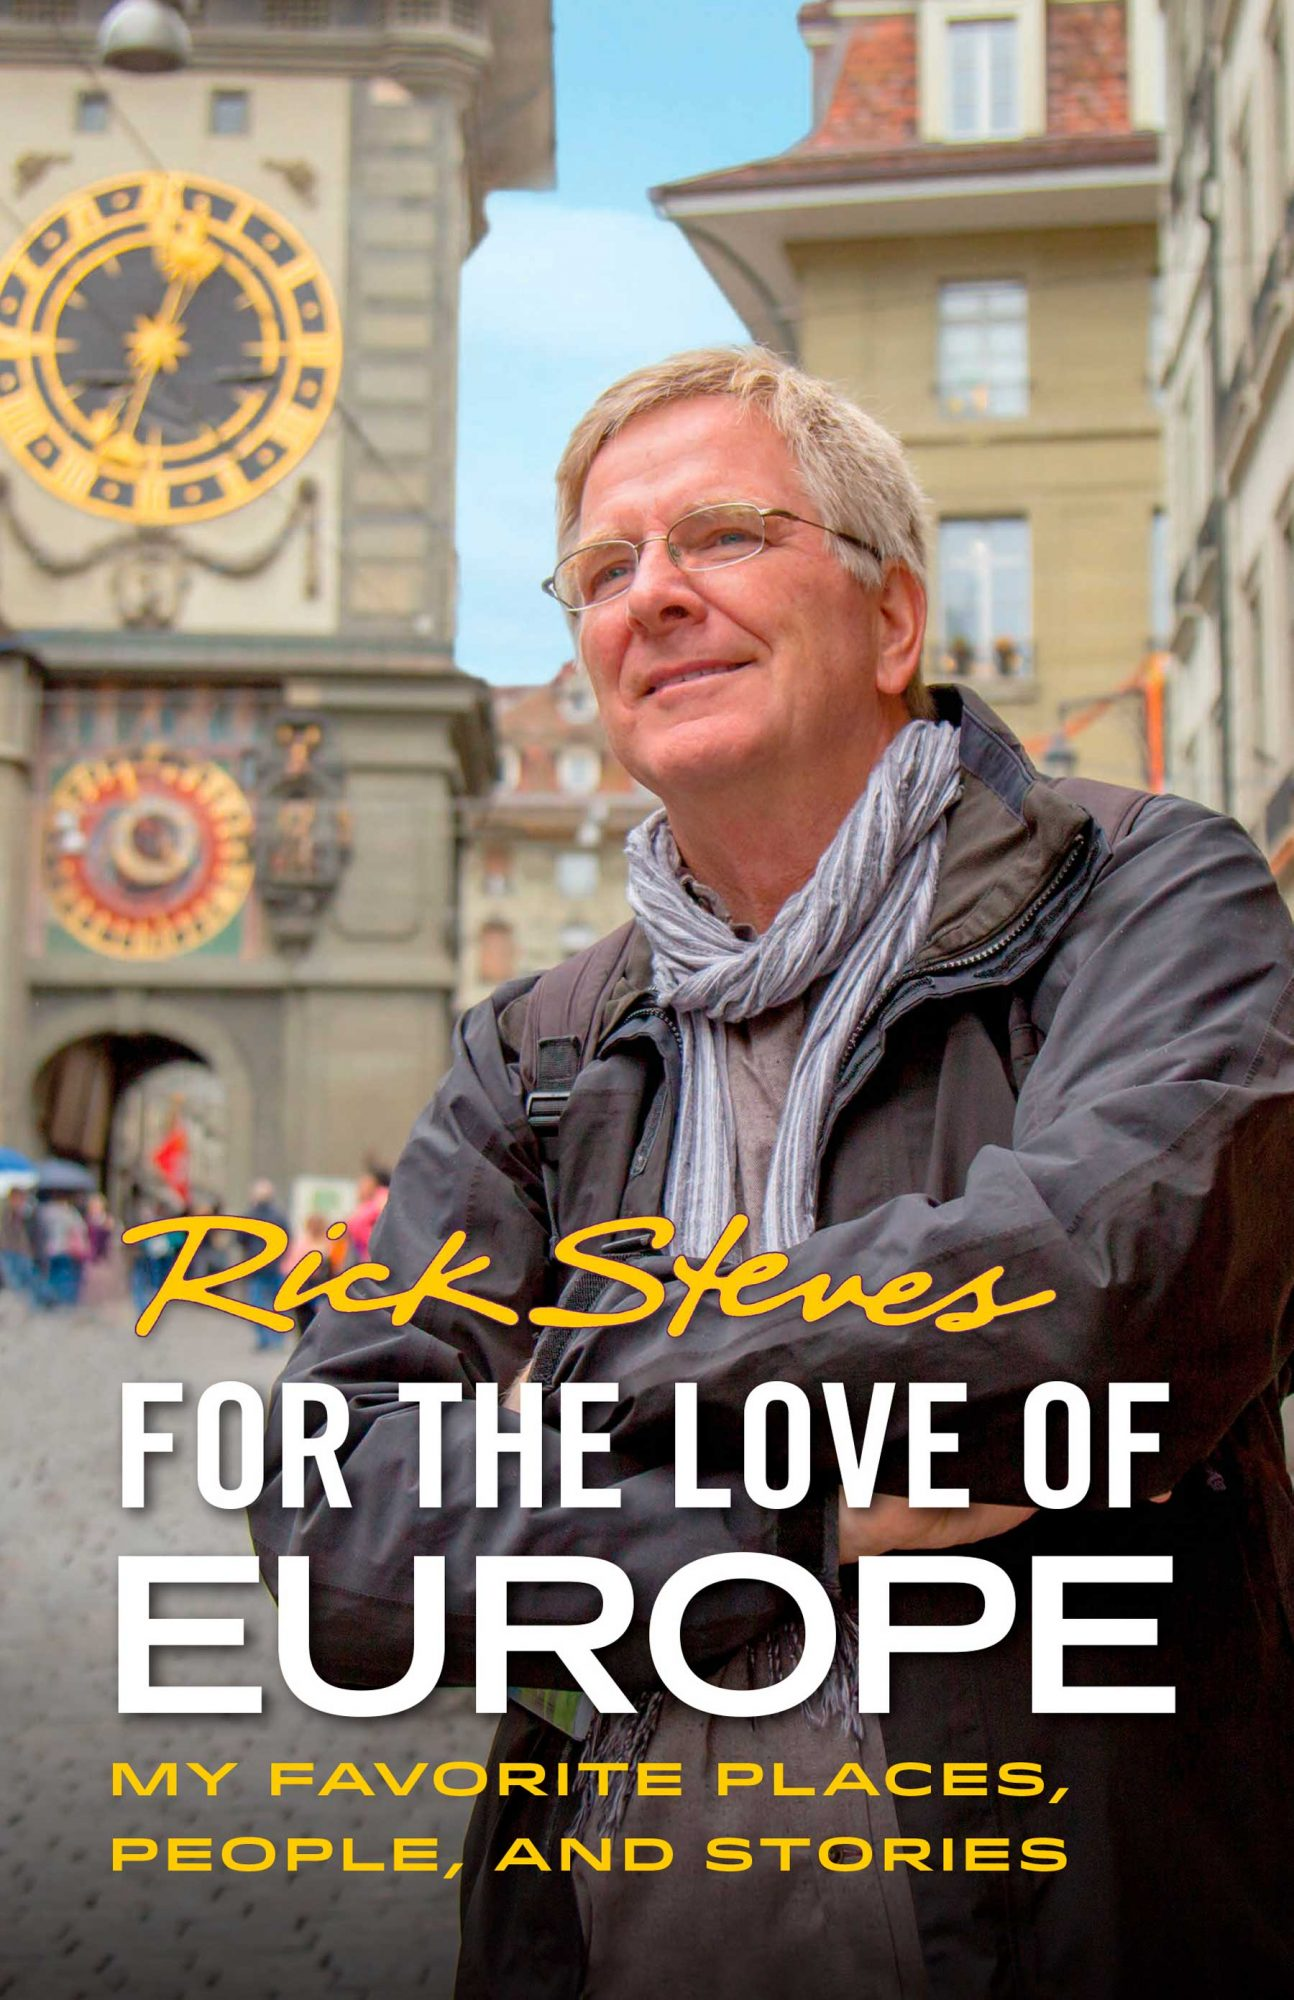 Rick Steves 'For Love of Europe' book cover